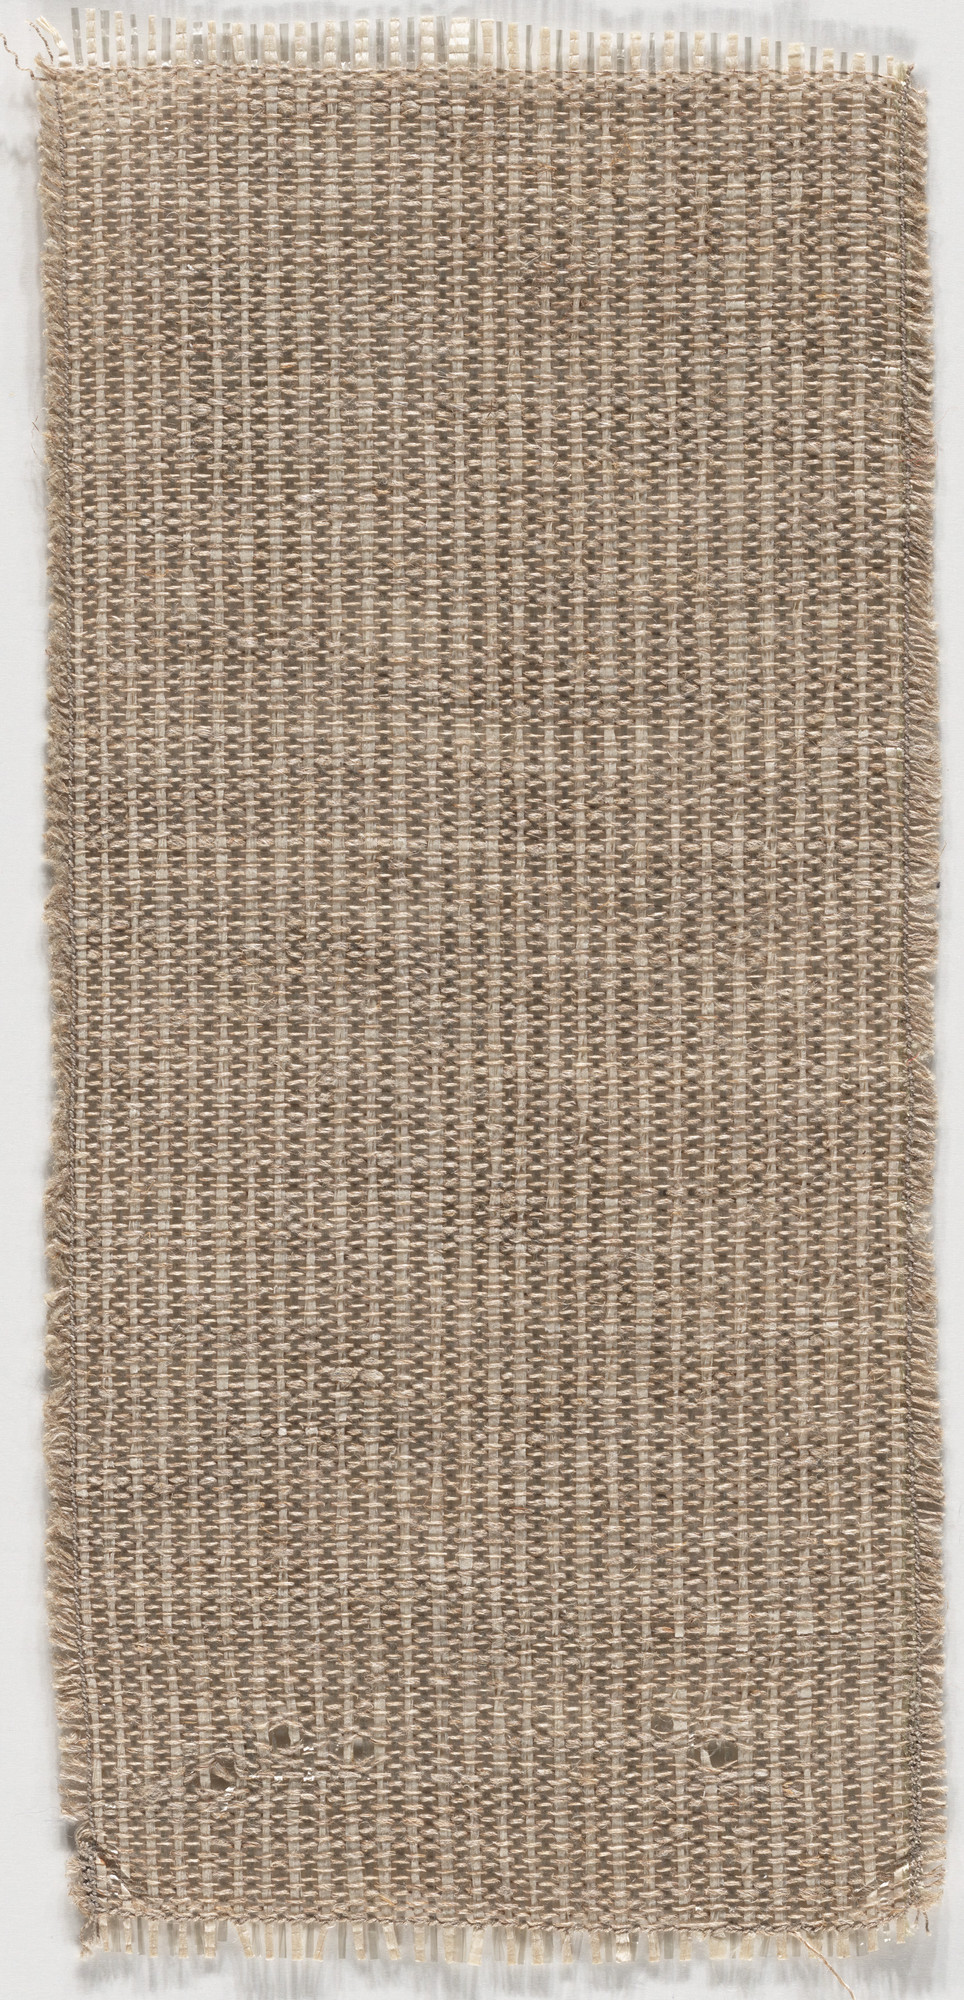 Anni Albers. Wall-Covering Material. 1929